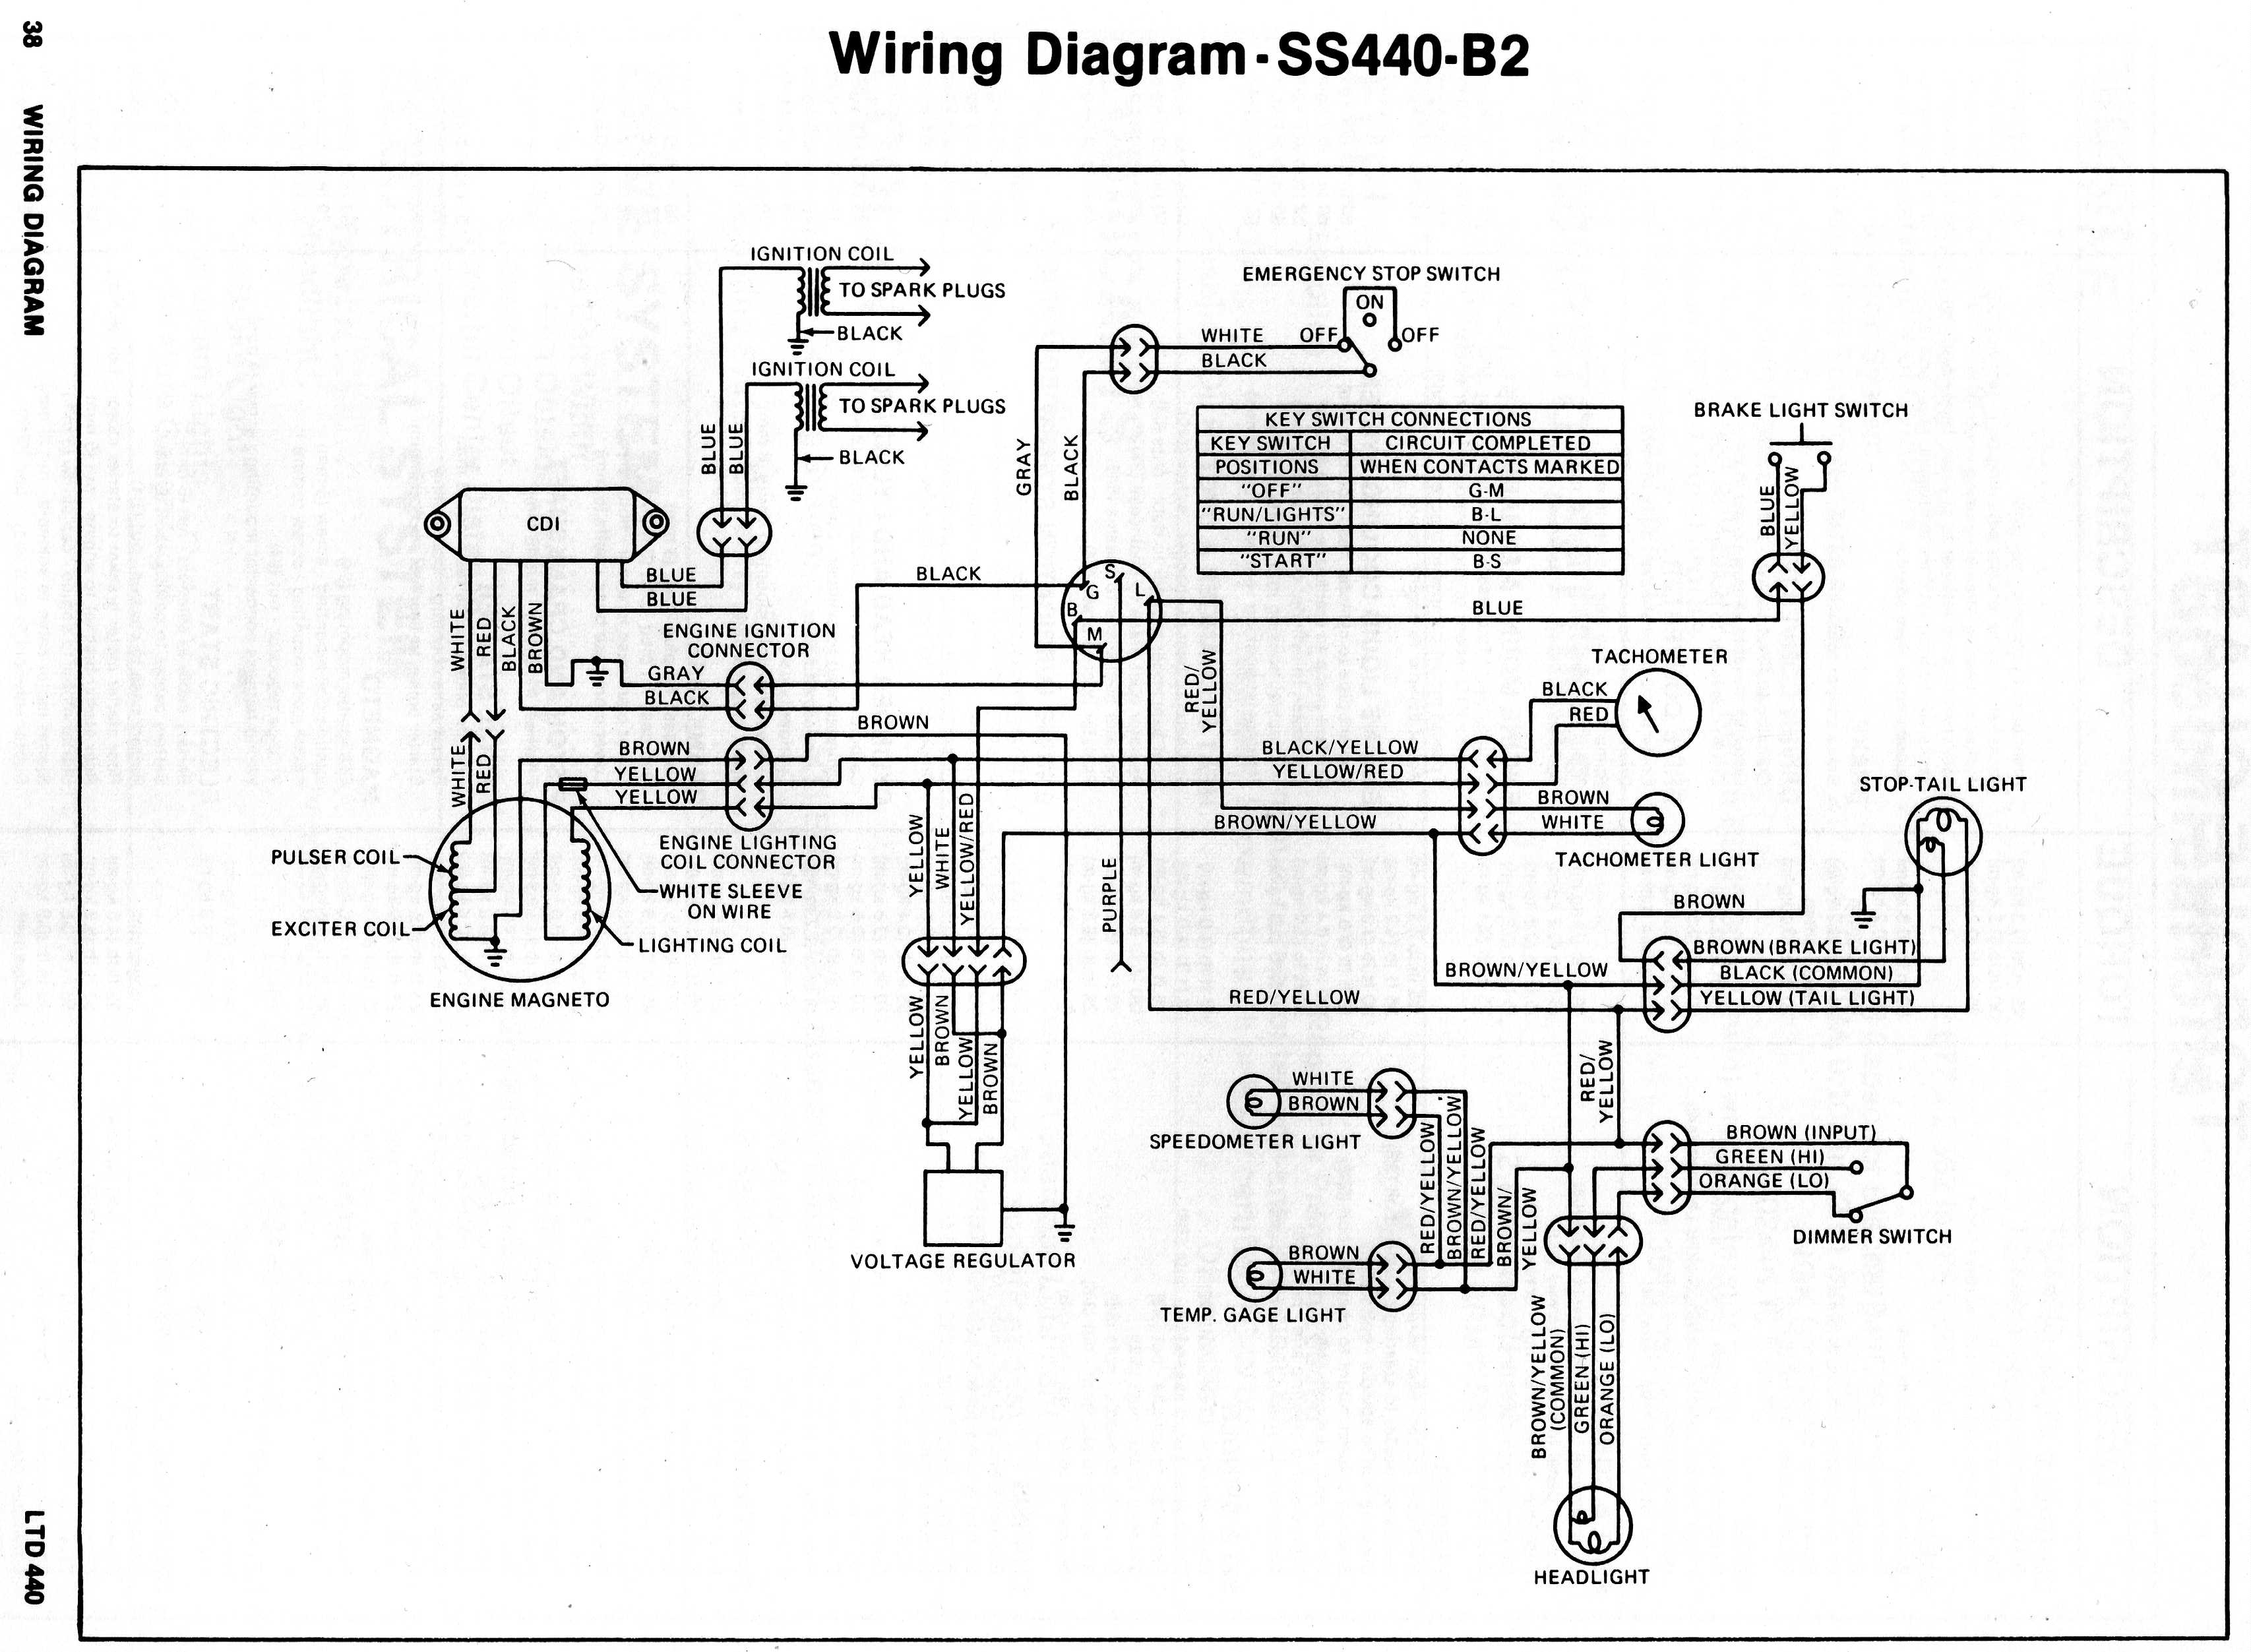 Invaderwire on kawasaki bayou 220 parts diagram